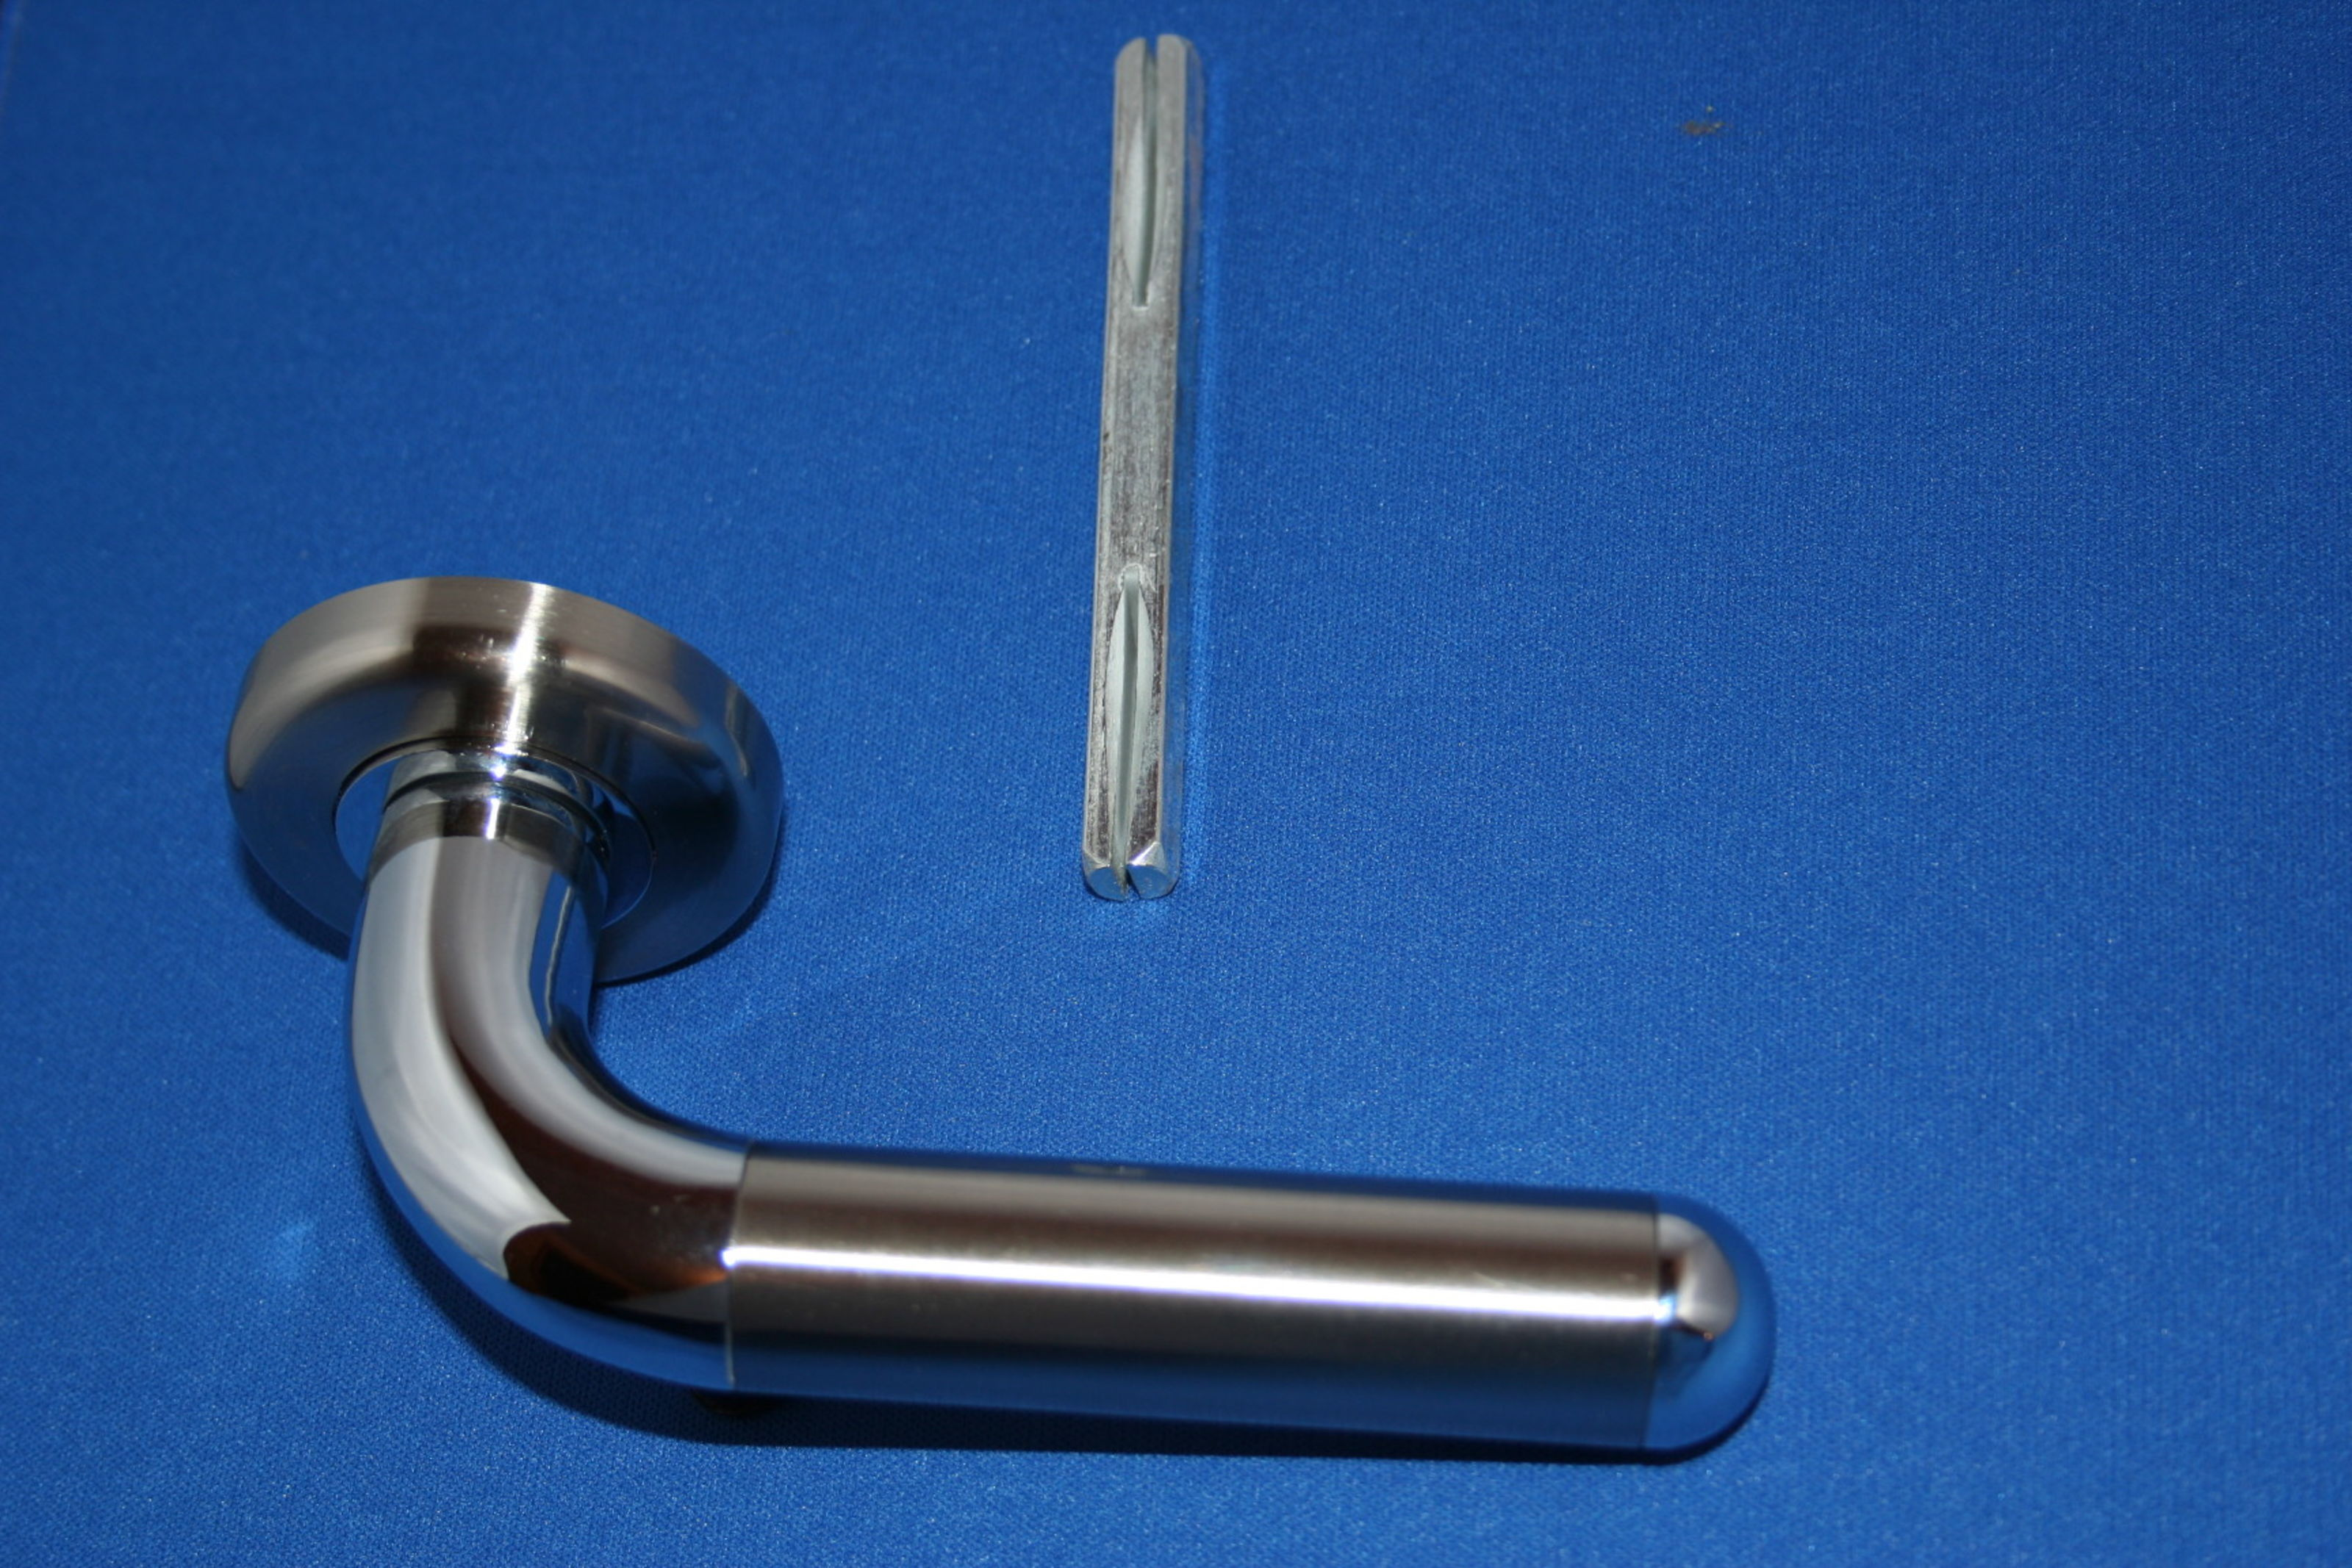 Securit Dimple Handles with split spindle B3481 S3481; Image 2086